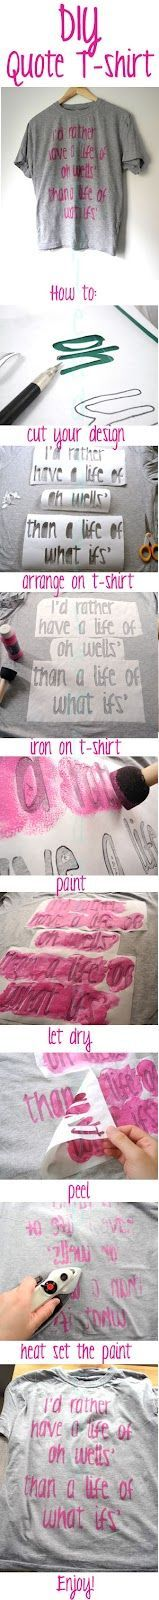 A Splendid Assemblage: DIY: Inspirational Quote T-Shirt #DIY-Crafts